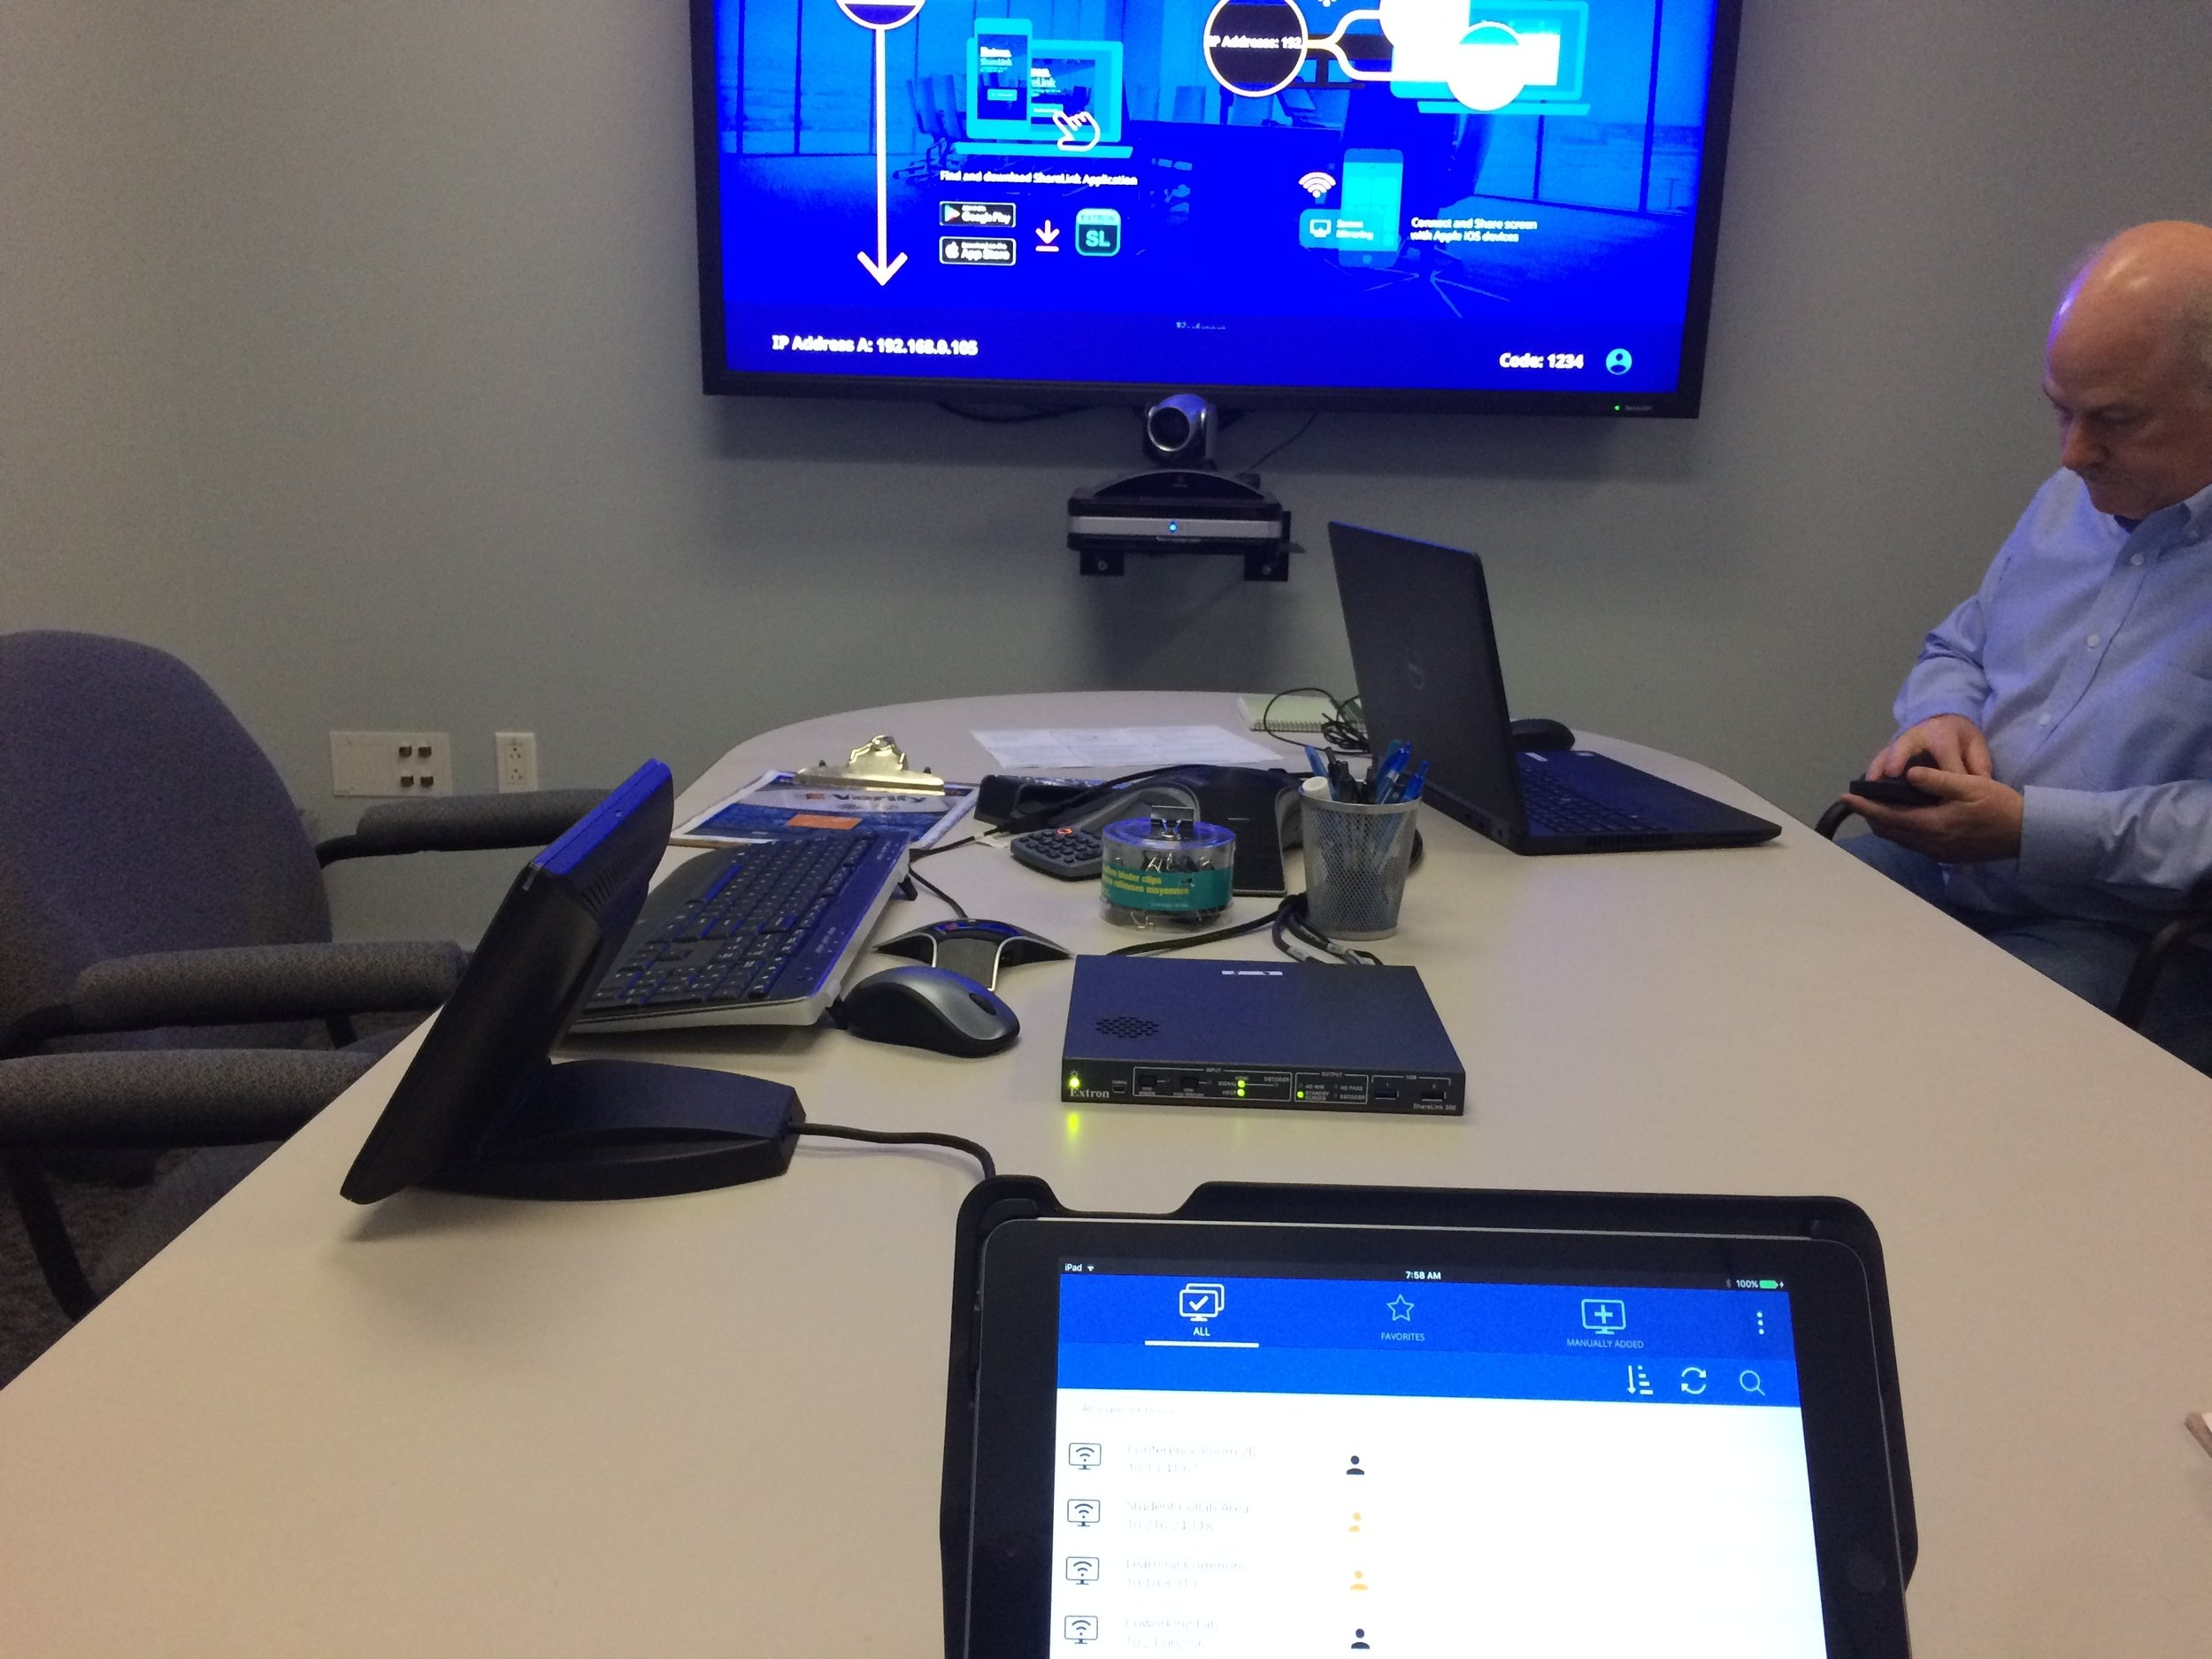 Perspective of a user testing the software. Once connected to a ShareLink device users can choose to share content to show on the large display in a room.